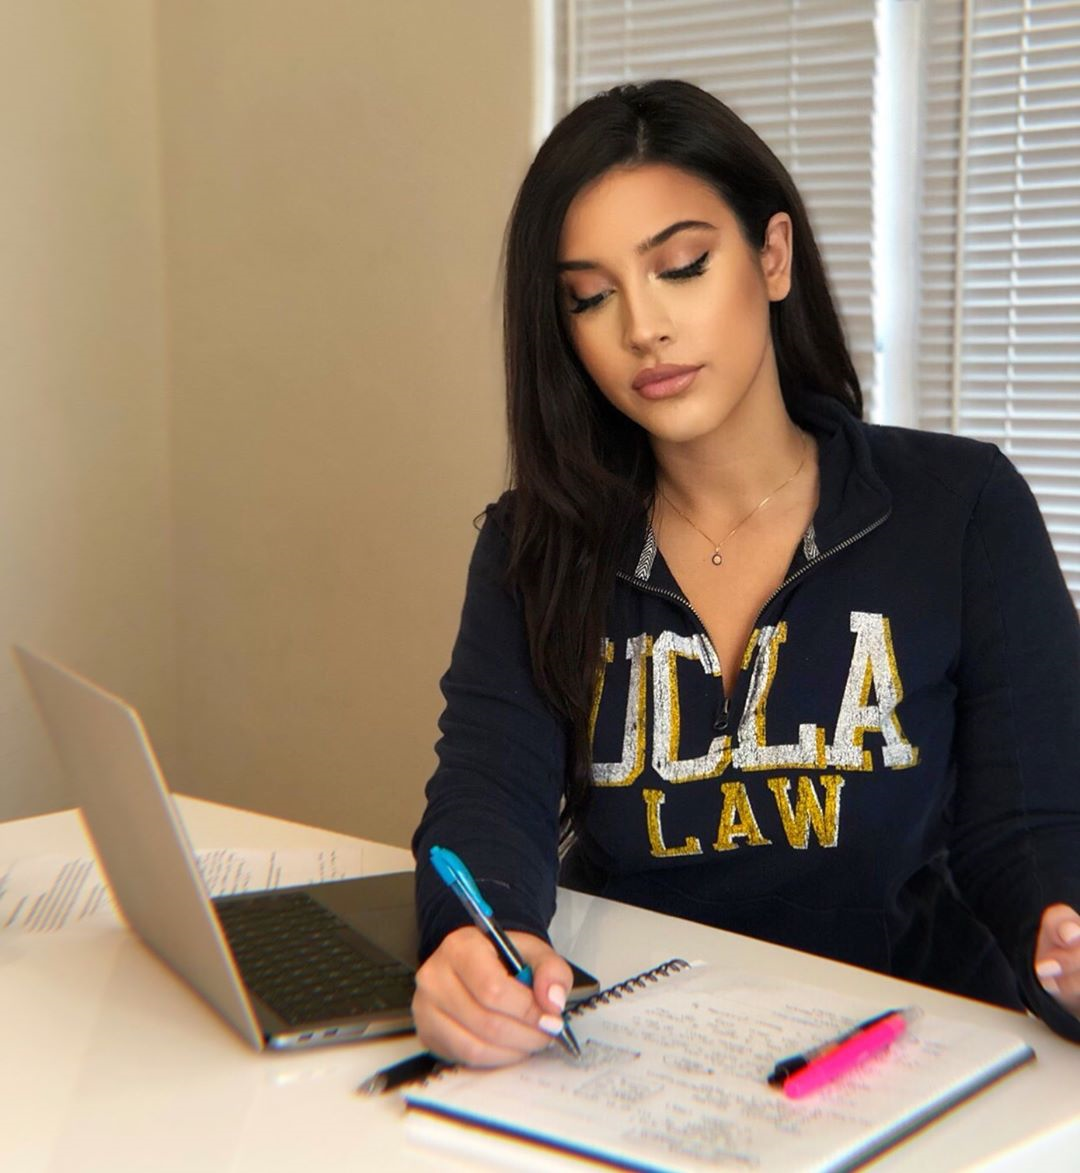 Dellara in UCLA sweater